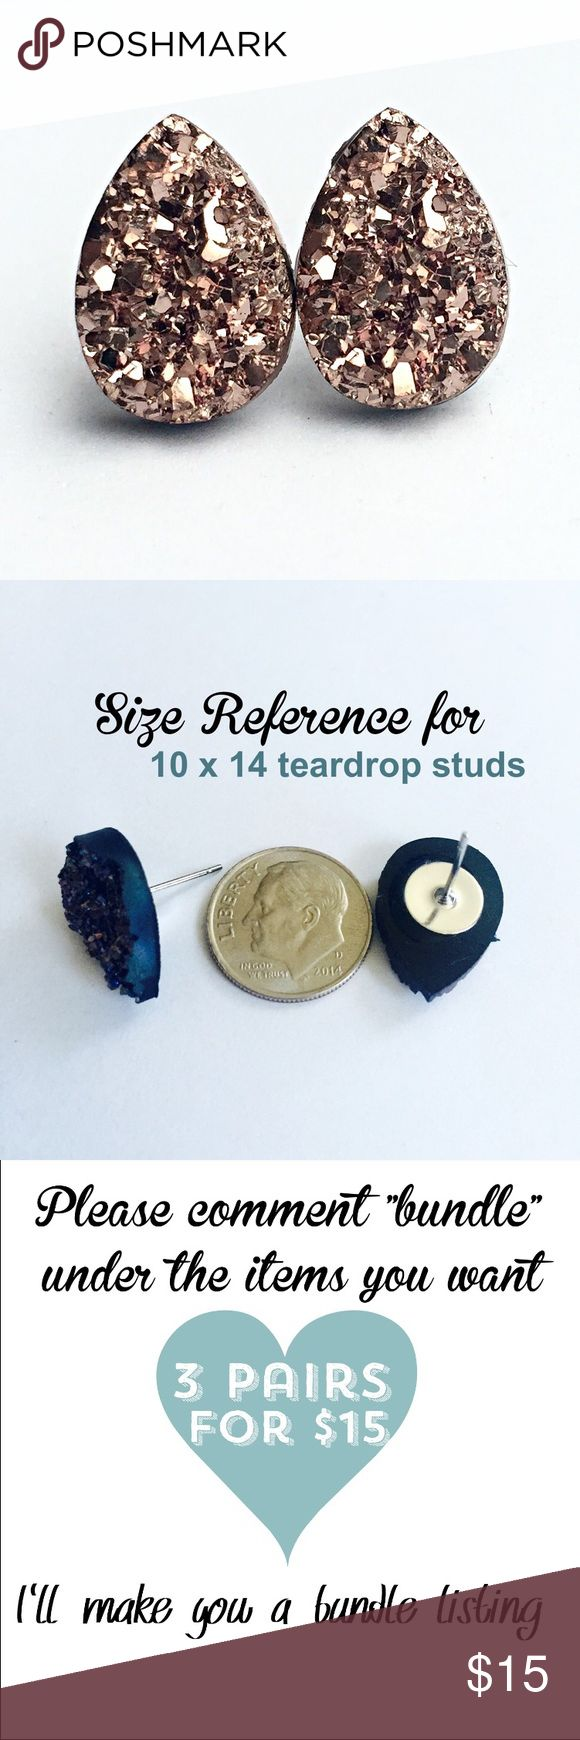 3 for 15 rose gold Druzy style teardrop studs New! Handmade by me 10x14mm acrylic faux druzy teardrop bead on silver tone posts. Silver backings. Lead & nickel free. PRICE FIRM if purchasing 1 pair($8). No trades.  ➡️TO GET 3 FOR 15 deal⬅️ ✅Click Add to Bundle under any 3 items (marked 3 for 15) ✅Make offer for $15 ✅I'll accept your offer ✅ Additional items $5 each so 4 pairs=$20, 5 pairs=$25, etc. If you need help, let me know  Jewelry Earrings